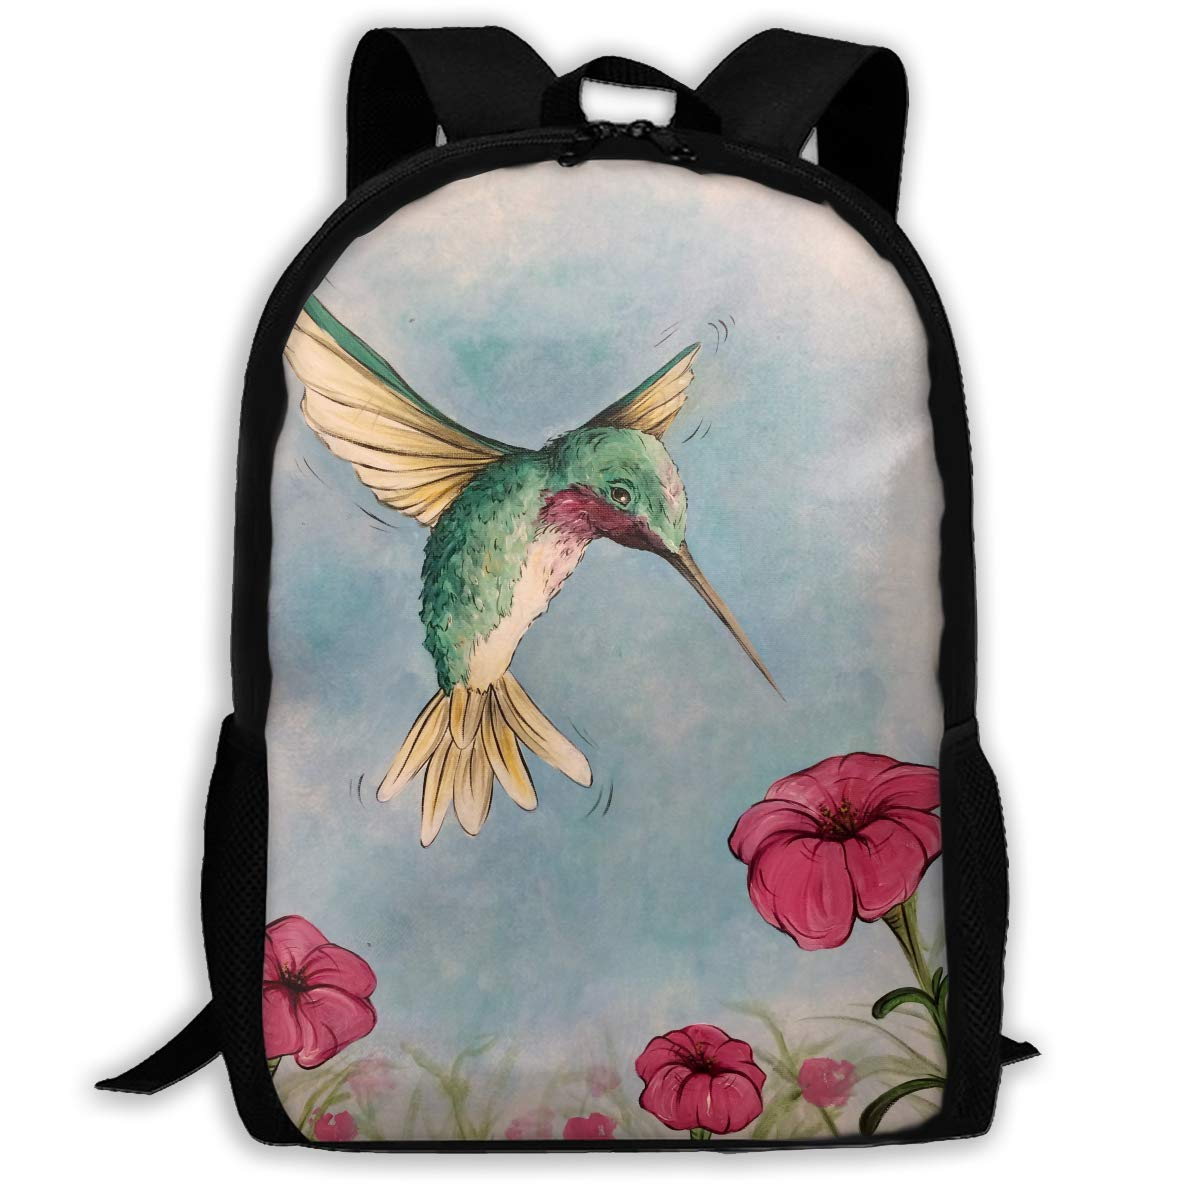 qihaoshangmao Backpacks Girl'S Shoulder Bag Schoolbags School Season Humming Bird Hovering Hummer Traveling Bags